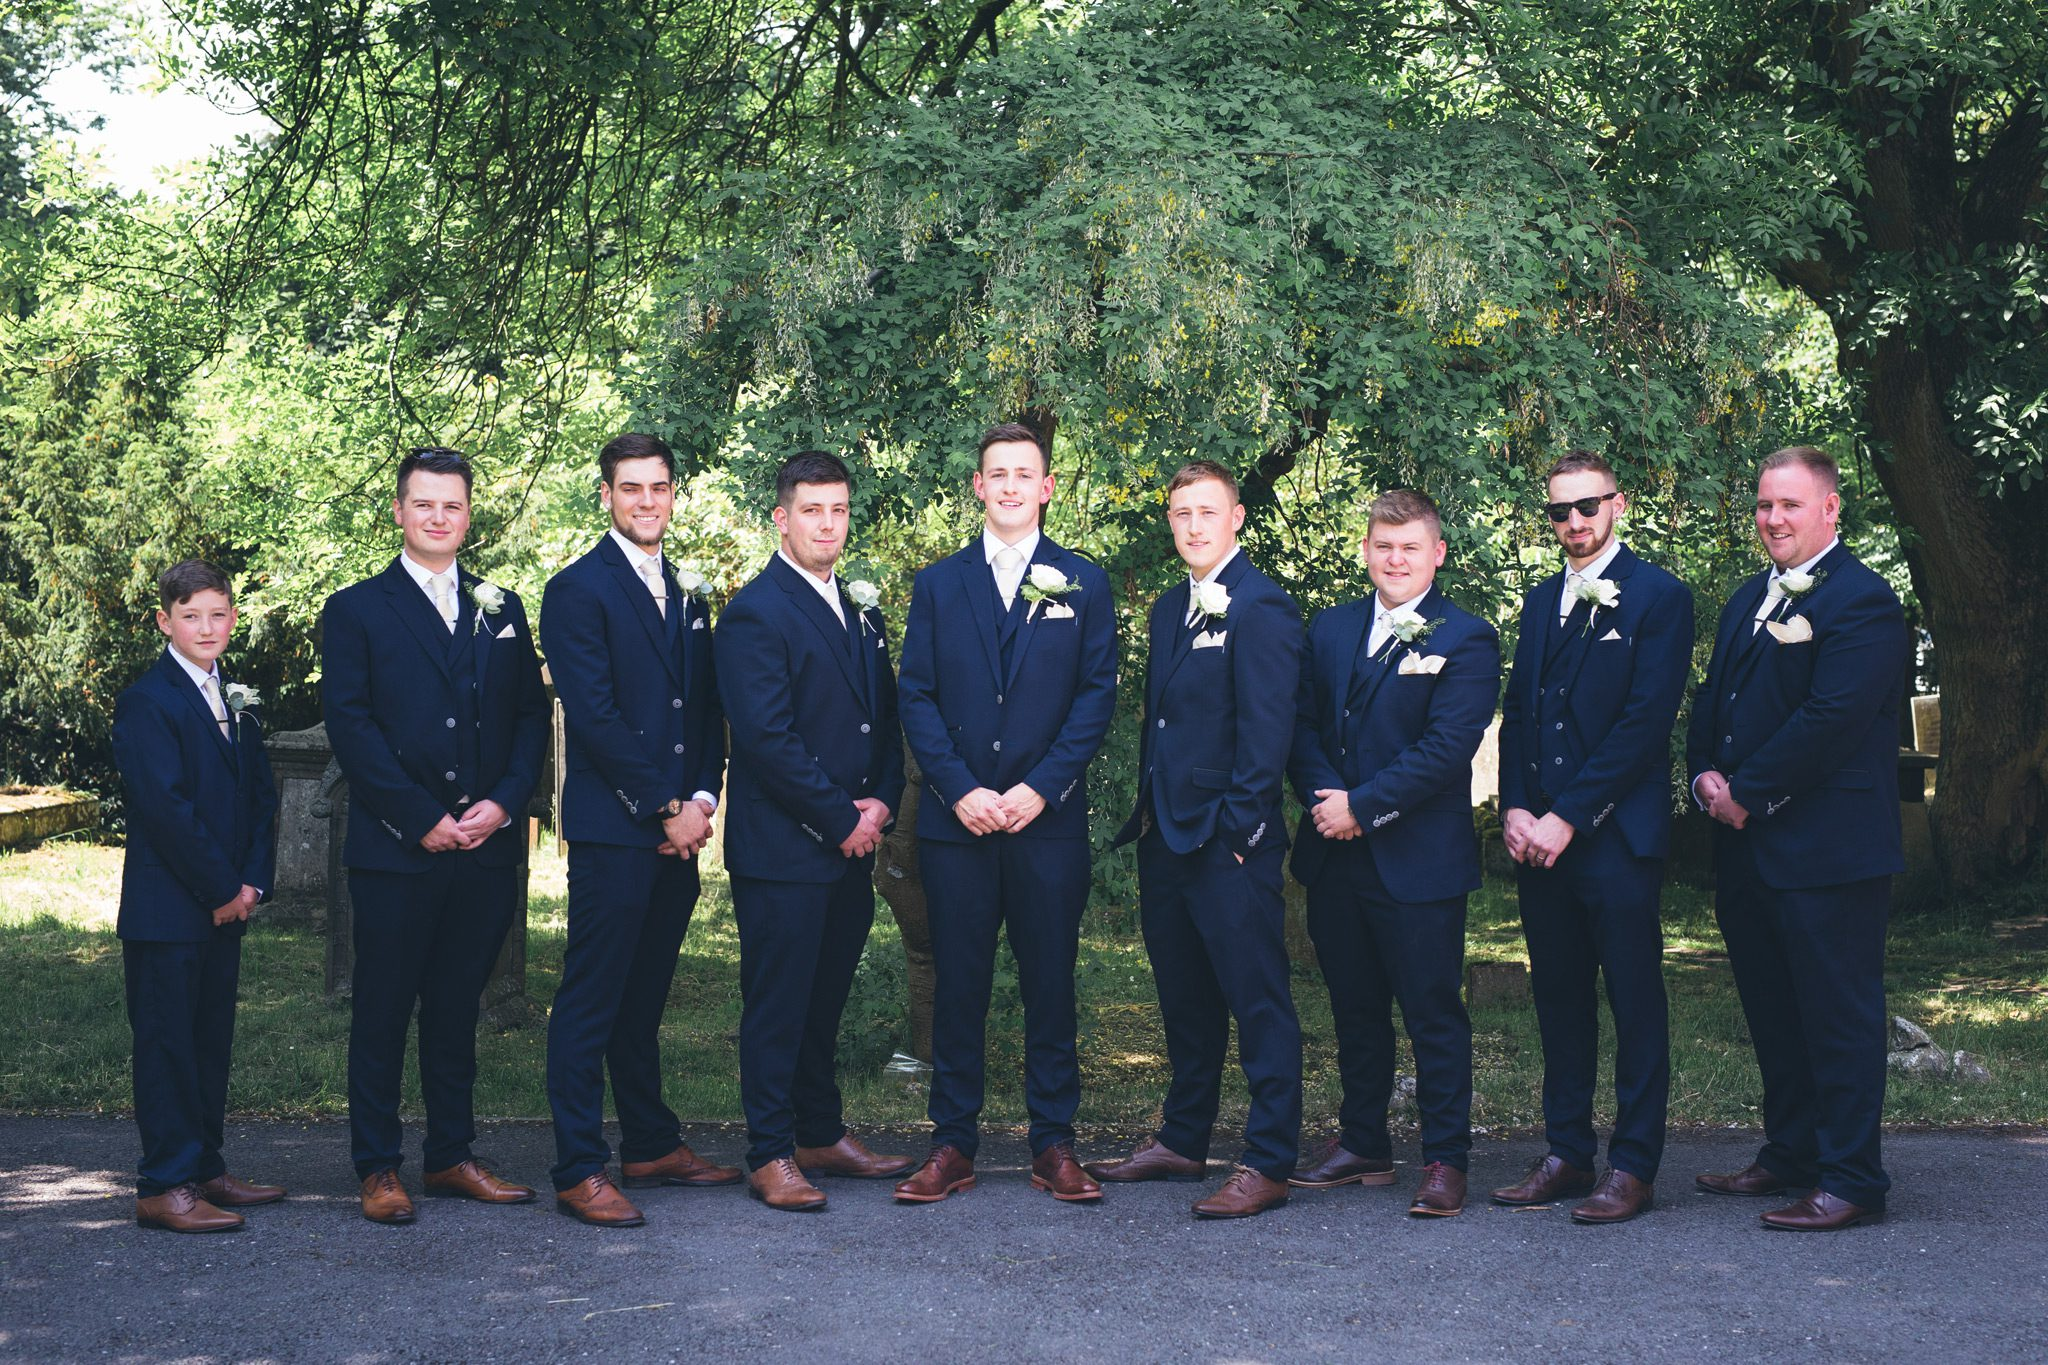 Jake and his Groomsmen